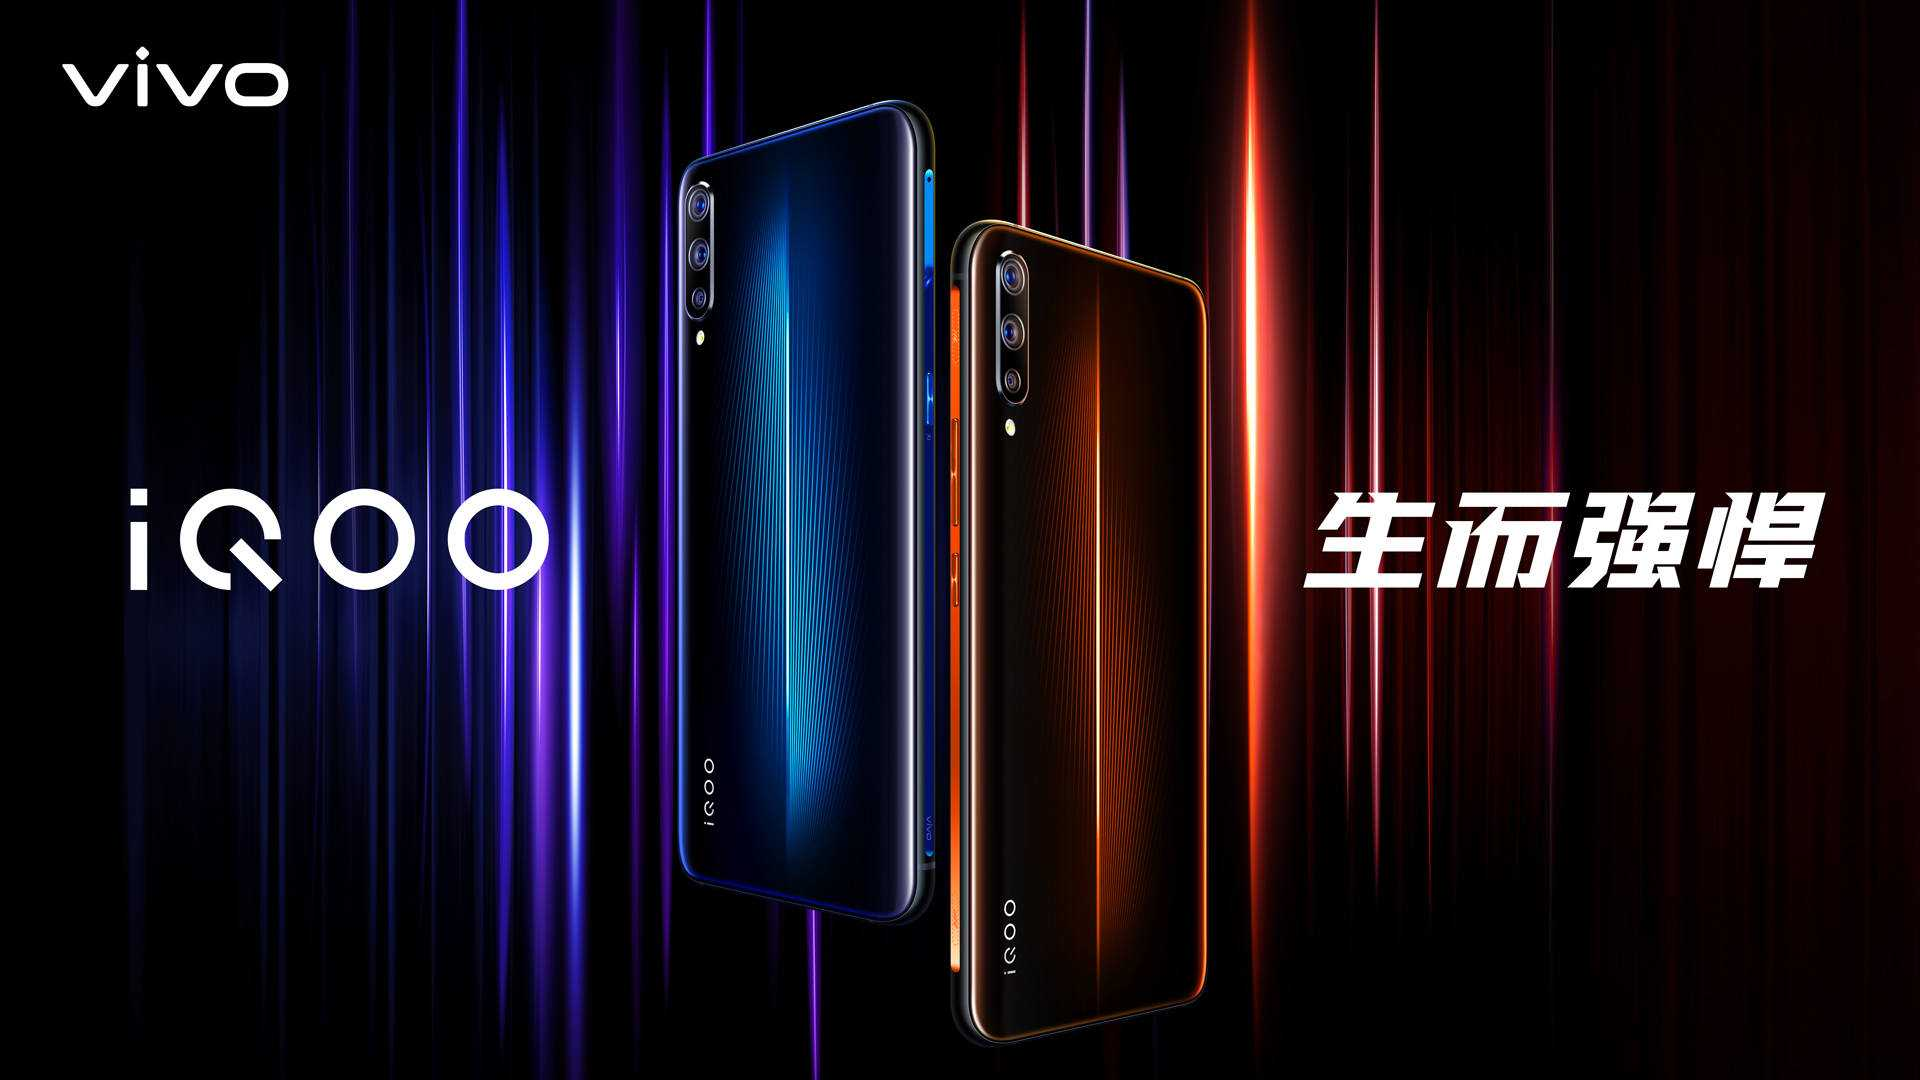 vivo-iqoo-specs-photos-leaked